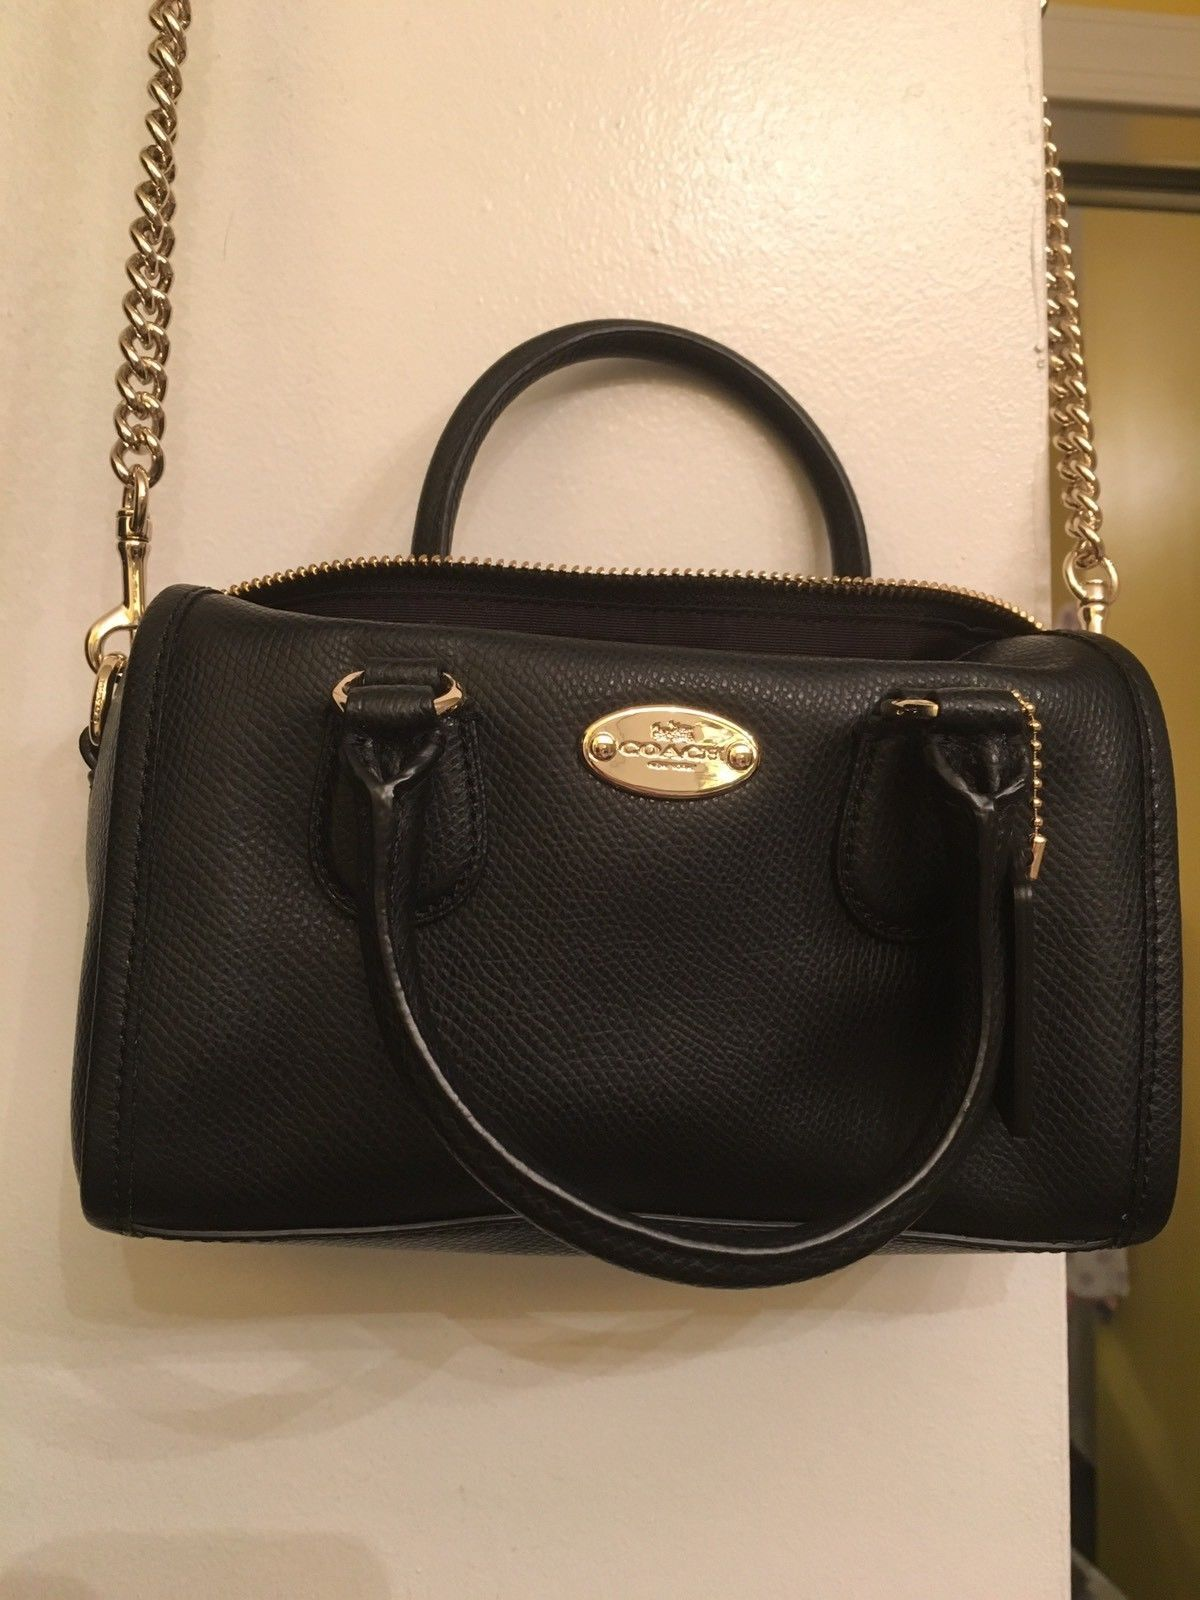 159f01e05 NWT Coach F34641 Baby Bennett Satchel In and 50 similar items